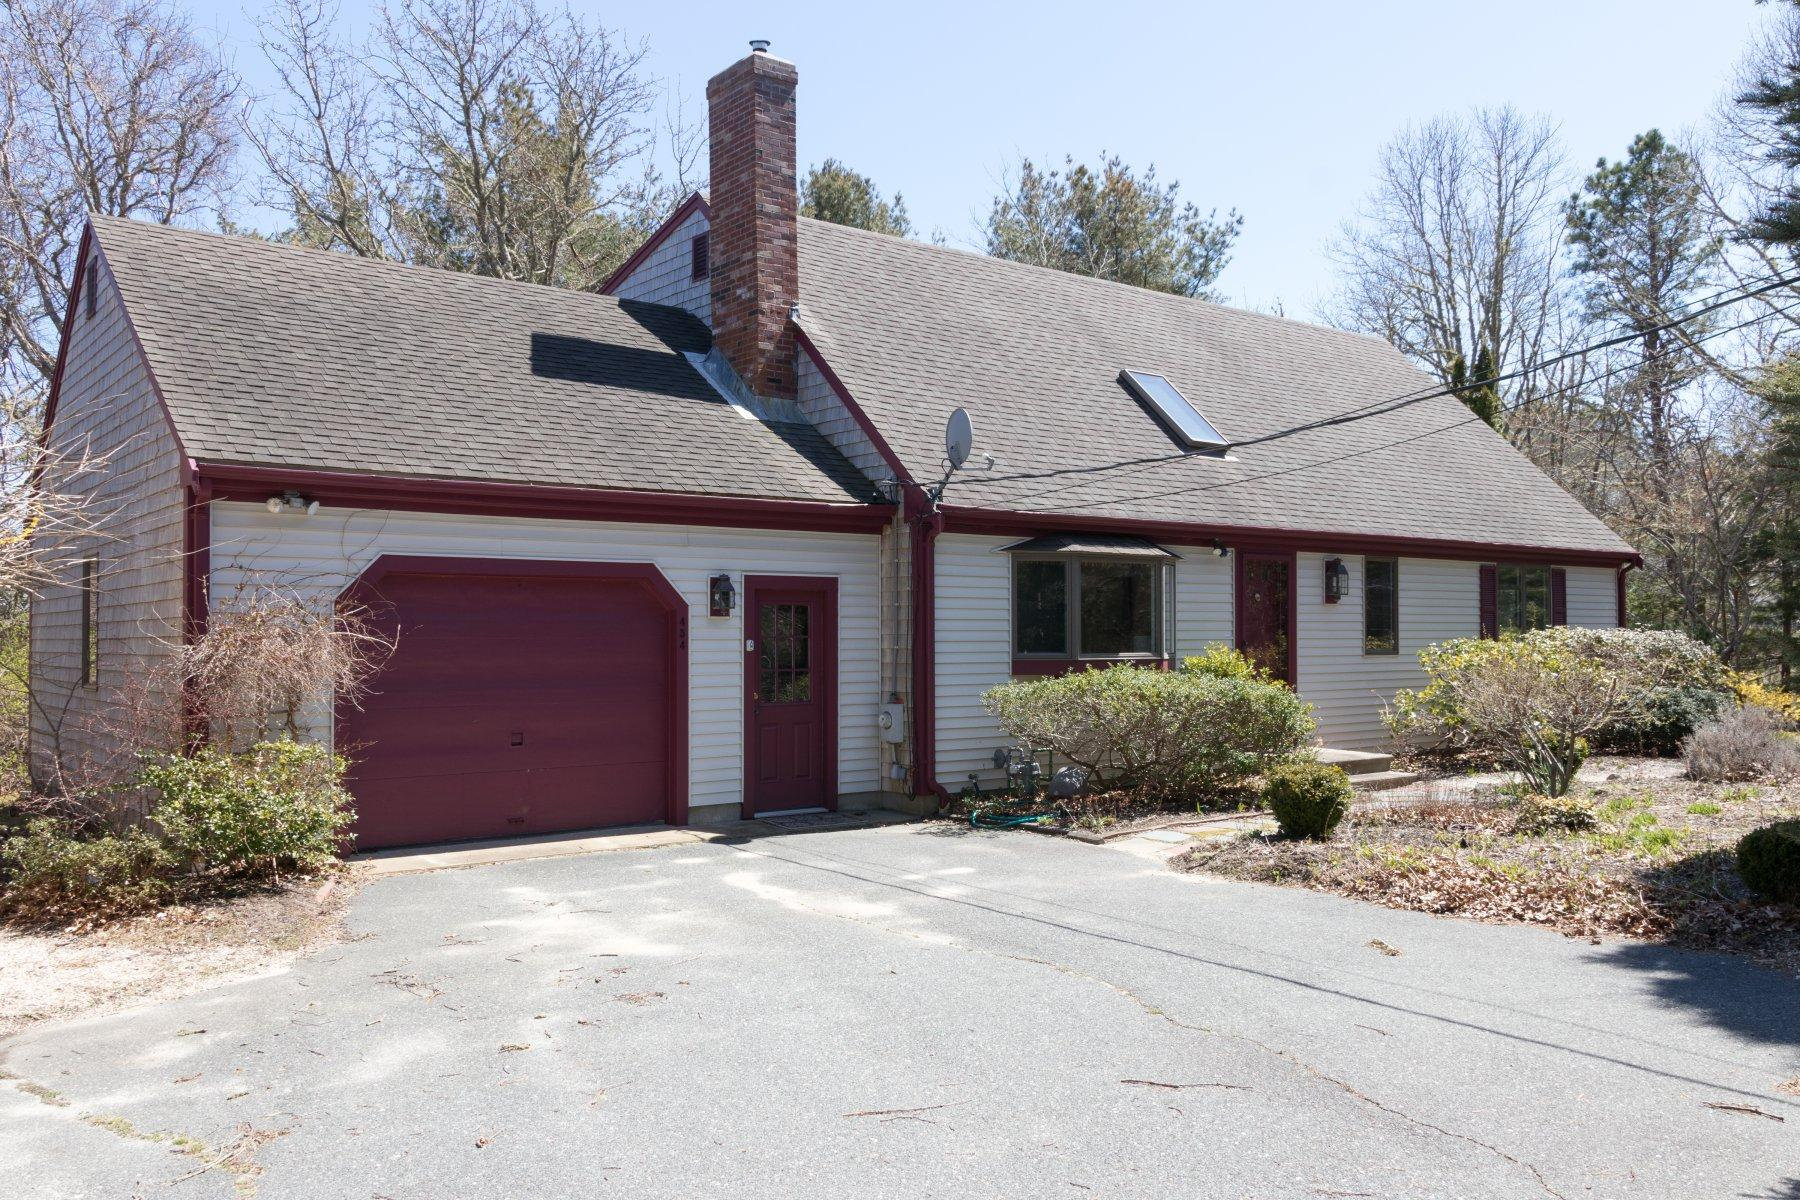 Single Family Home for Sale at 454 Training Field Road, Chatham, MA Chatham, Massachusetts 02633 United States